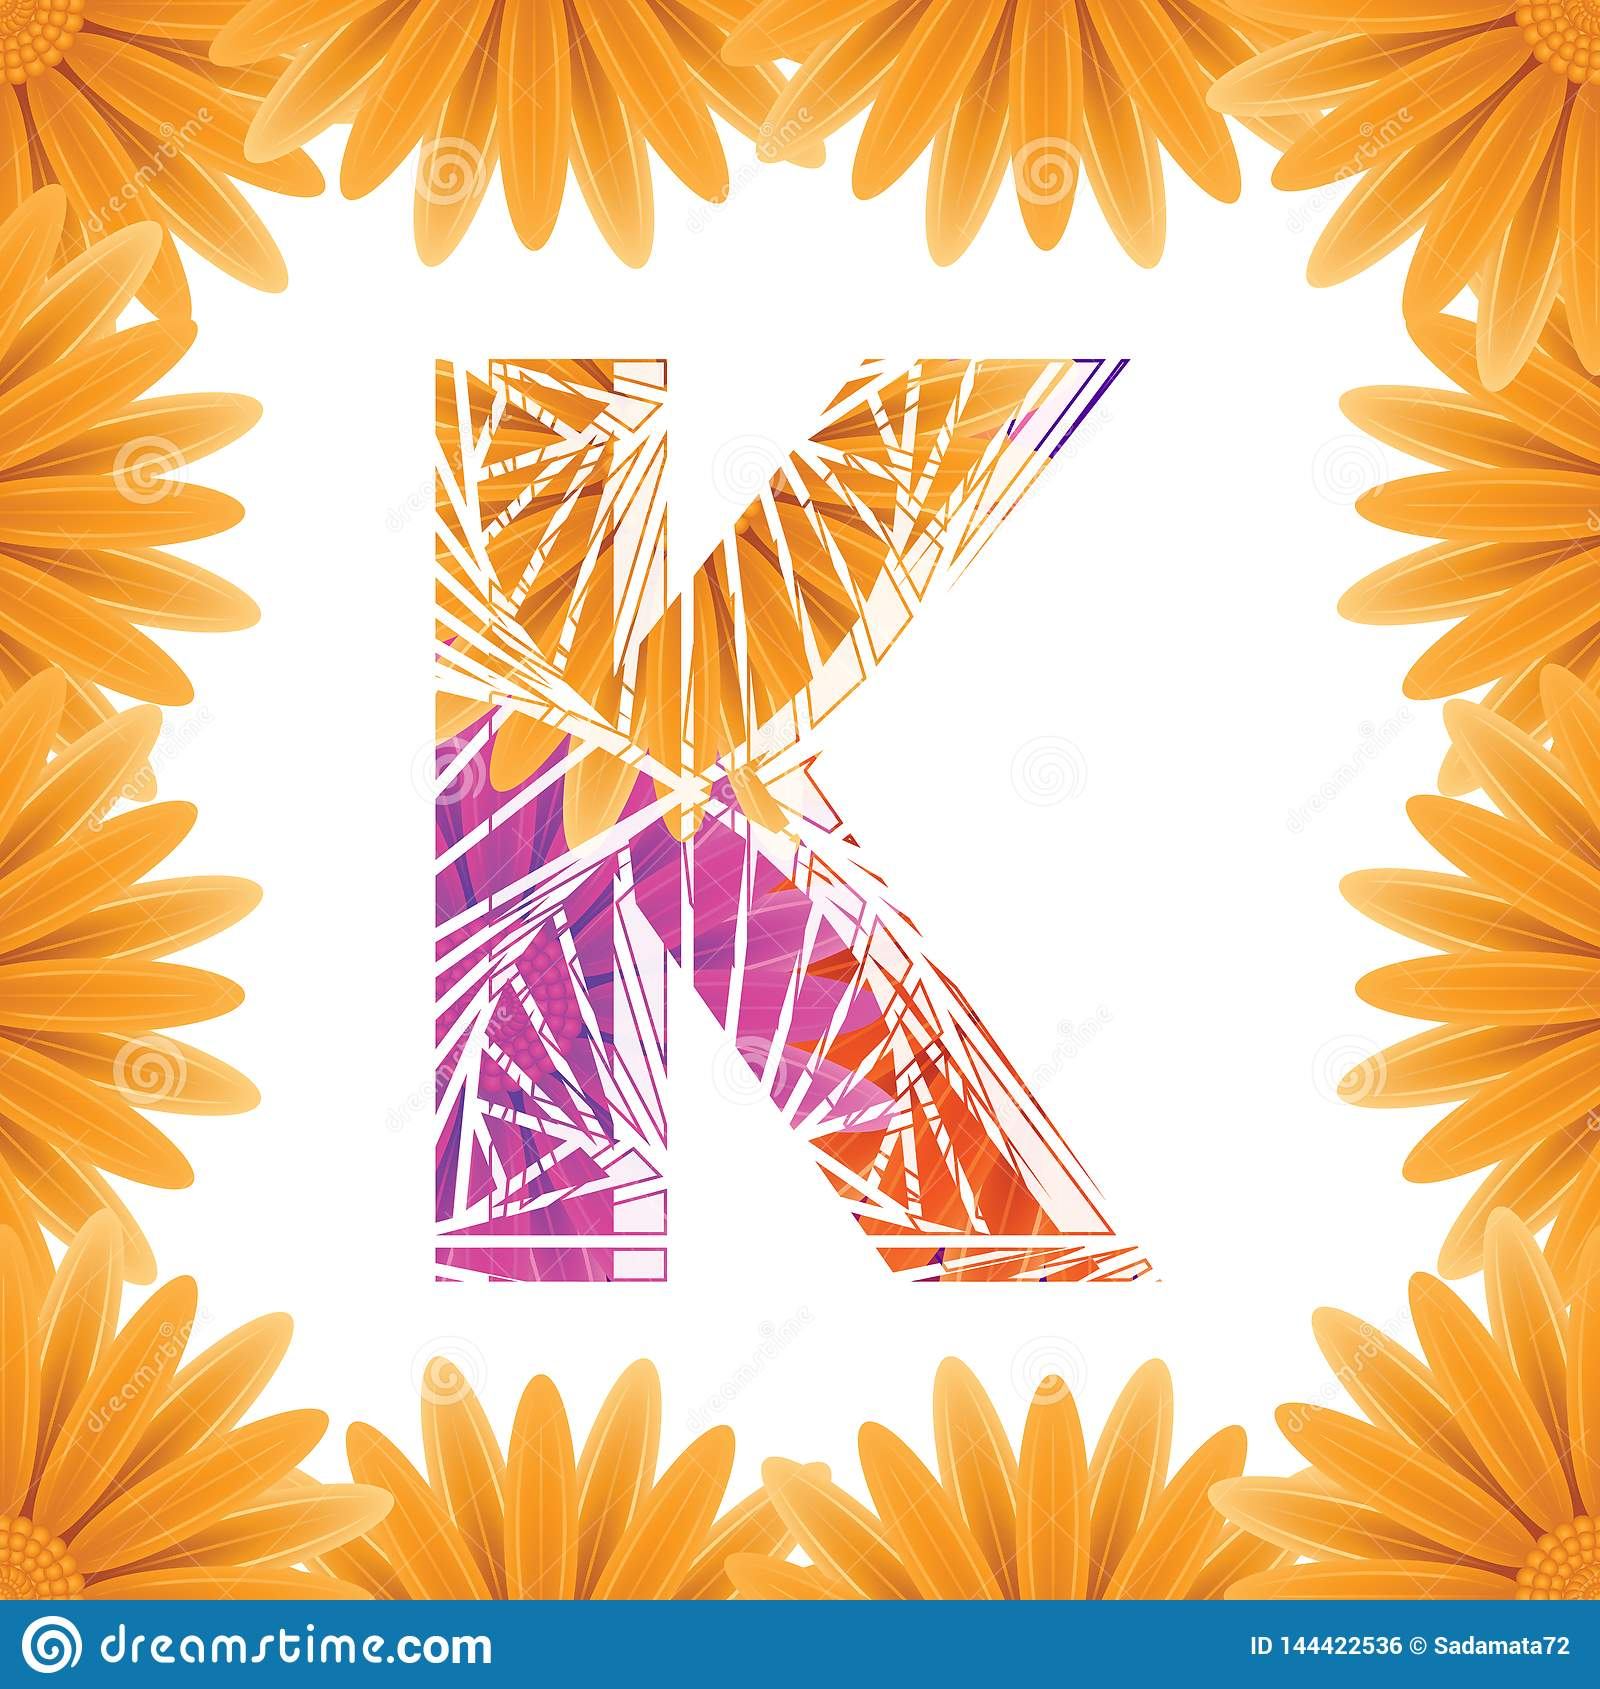 Floral Letter K design template. Mother's Das flower logo type design concept of Abstract alphabet logo